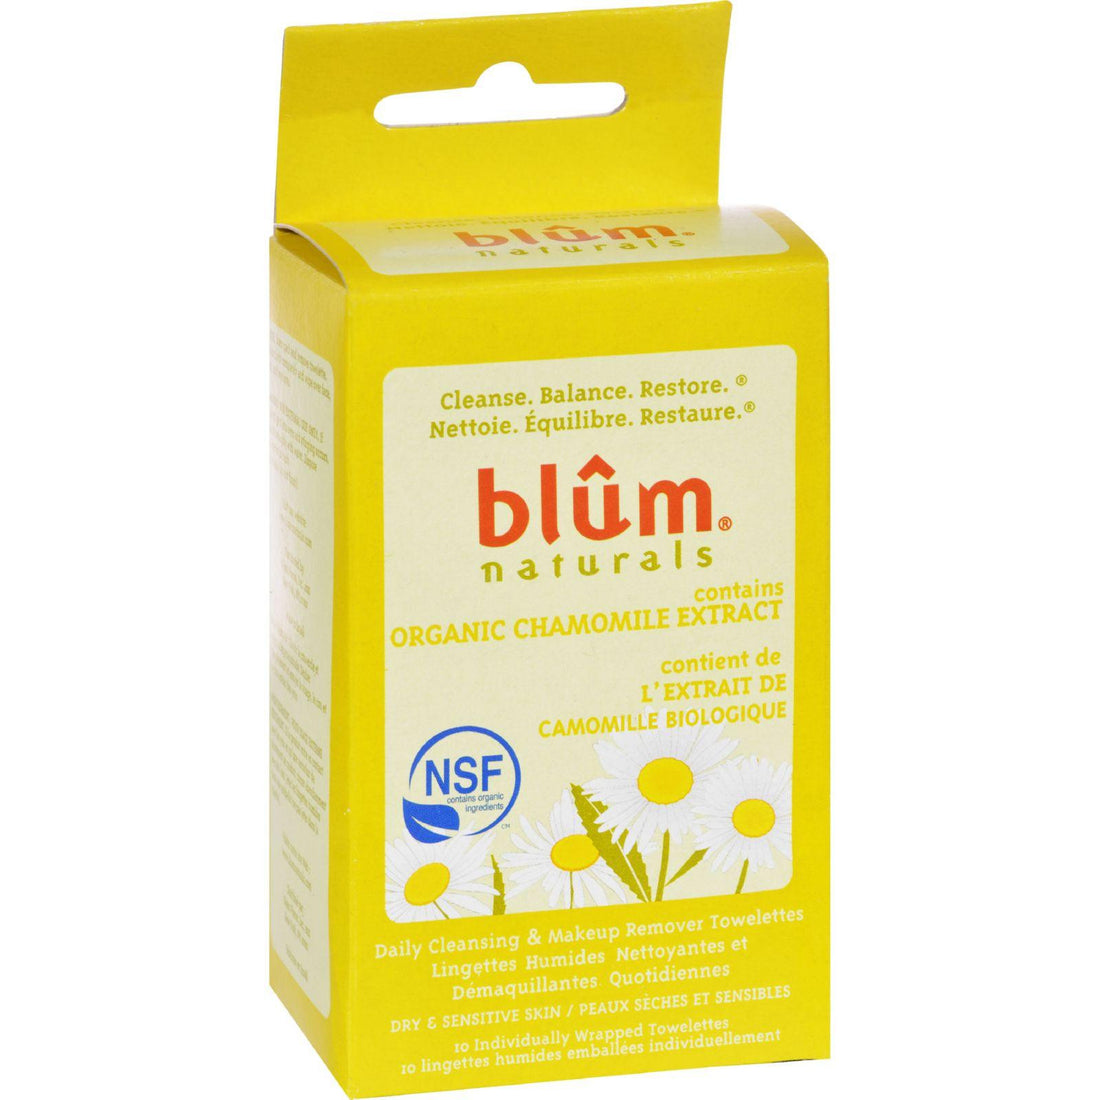 Mother Mantis: Blum Naturals Dry And Sensitive Skin Daily Cleansing And Makeup Remover Towelettes - 10 Towelettes Blum Naturals